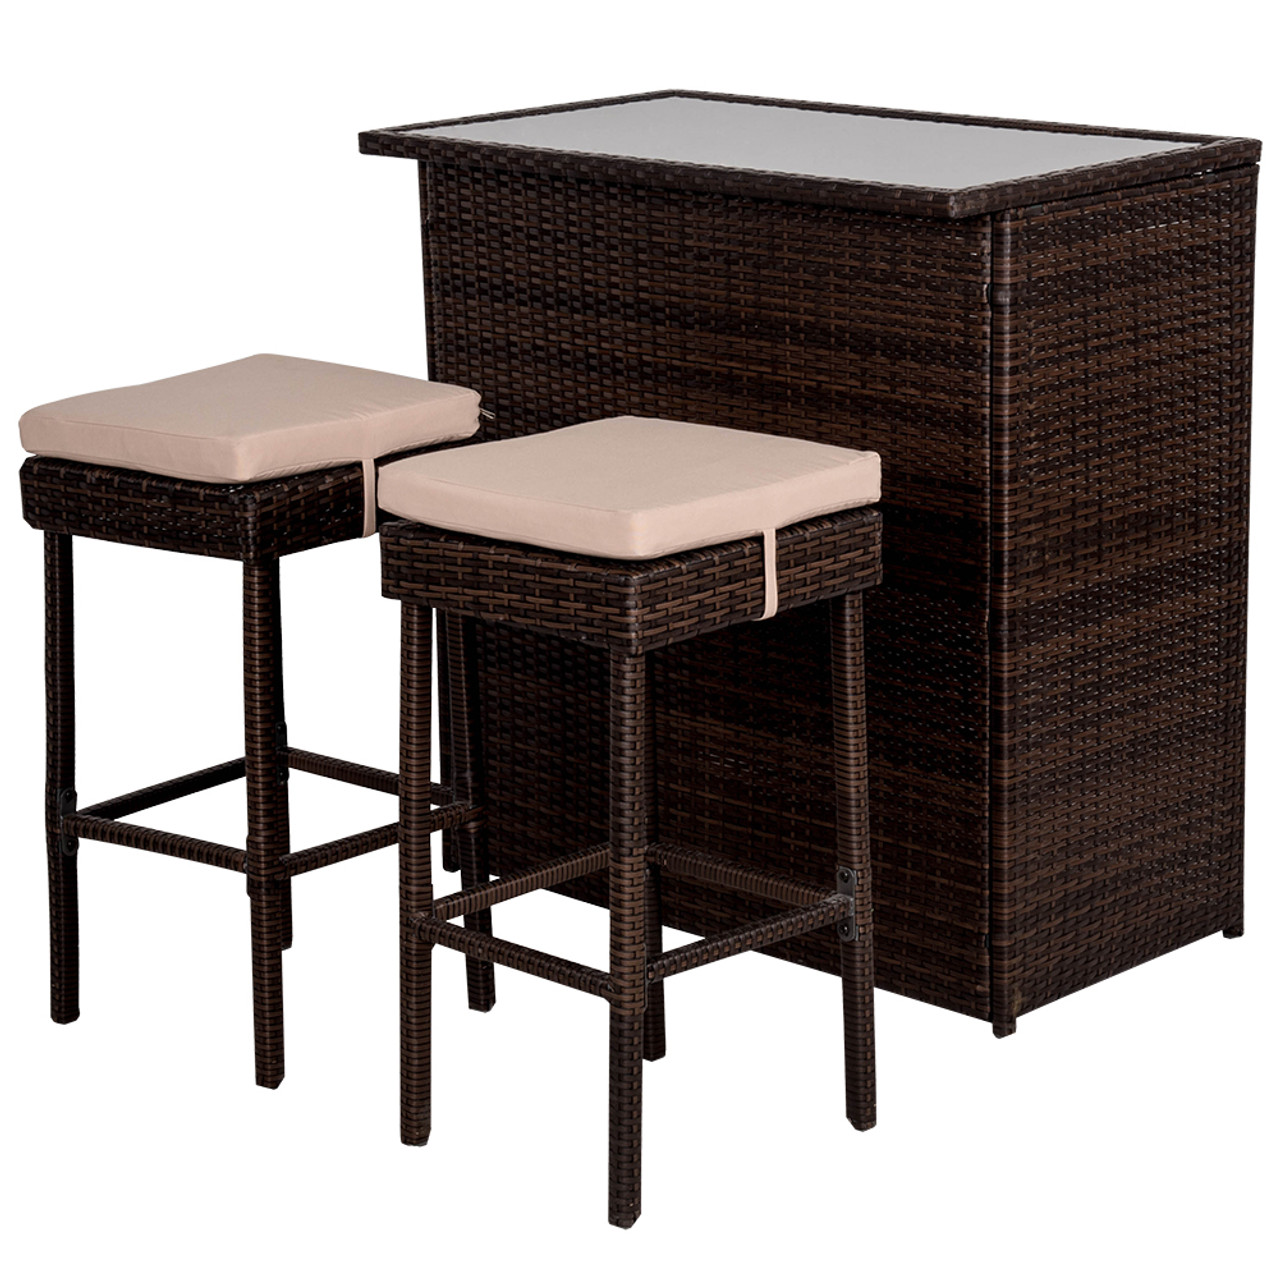 Deluxe 3pc Rattan Wicker Bar Set With Cushions Bar And 2